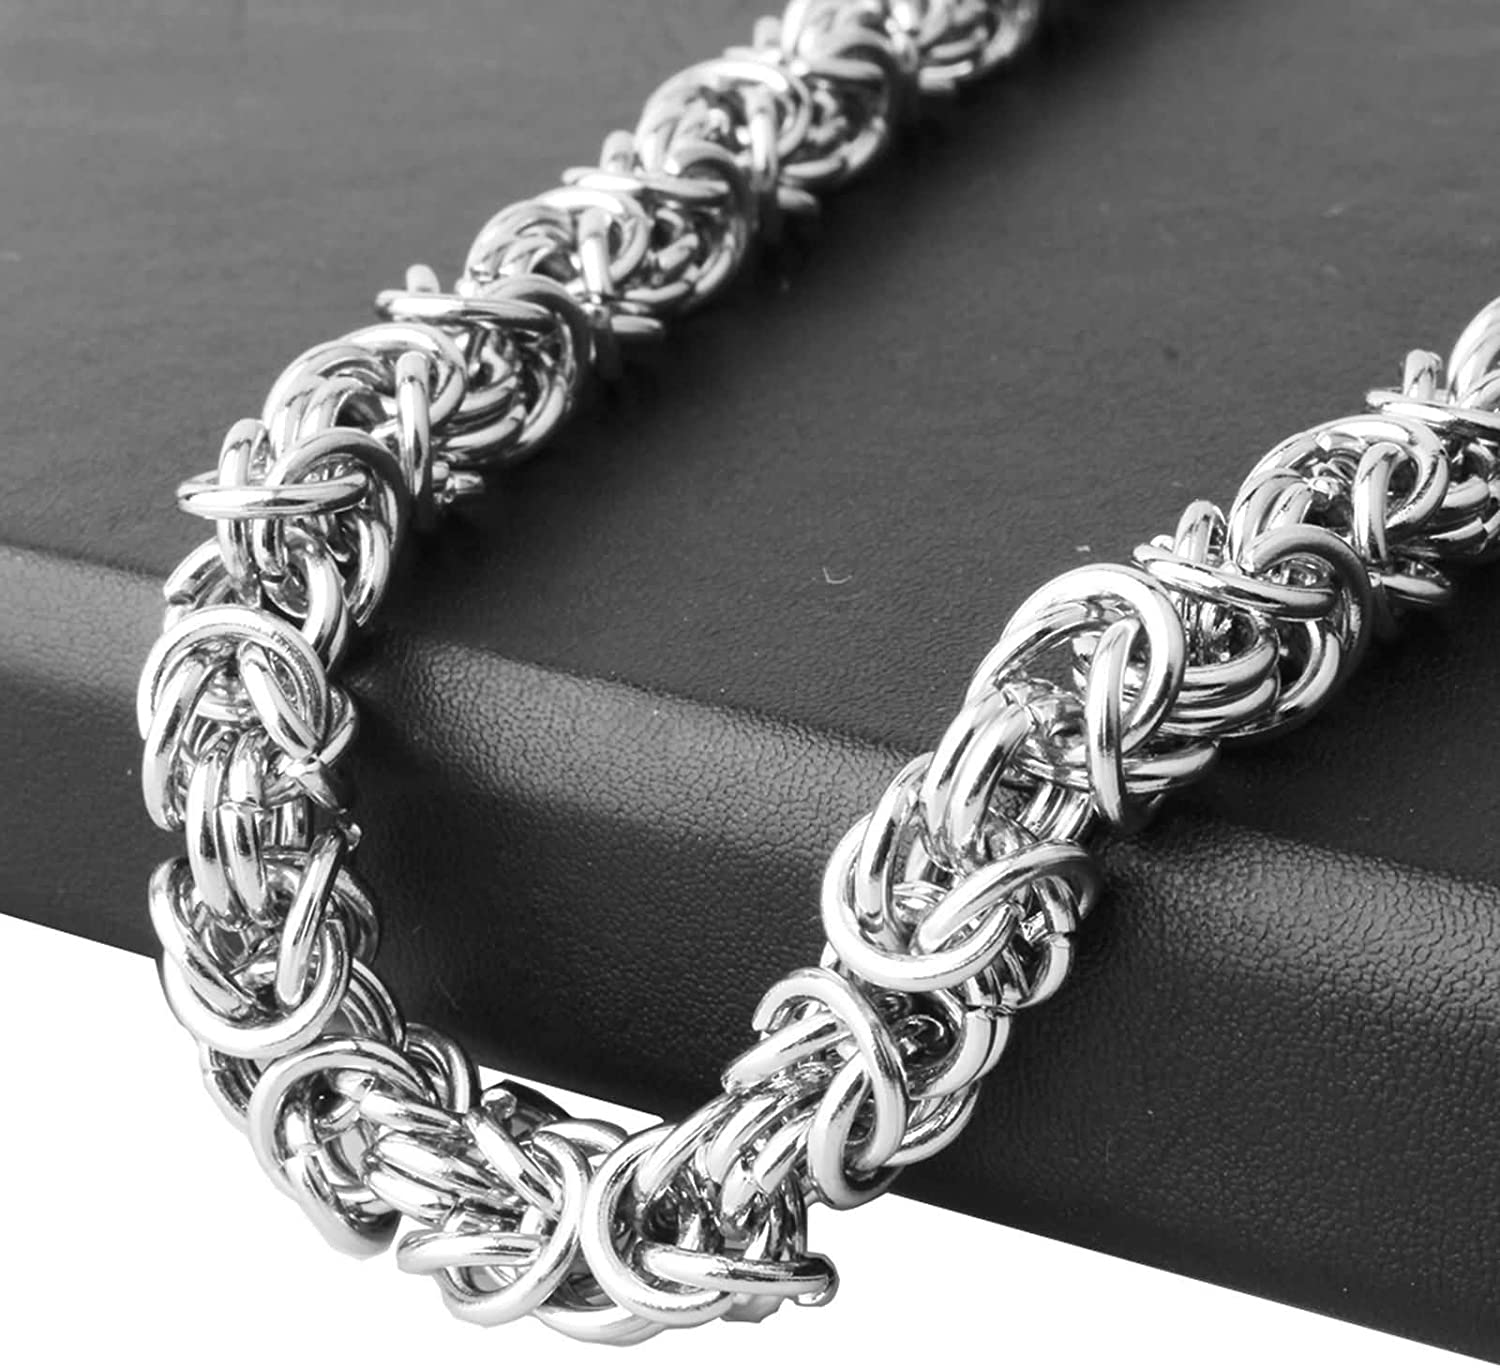 Aokarry Stylish Neck Chains for Men 316L Stainless Steel Byzantine Chain Necklace for Men